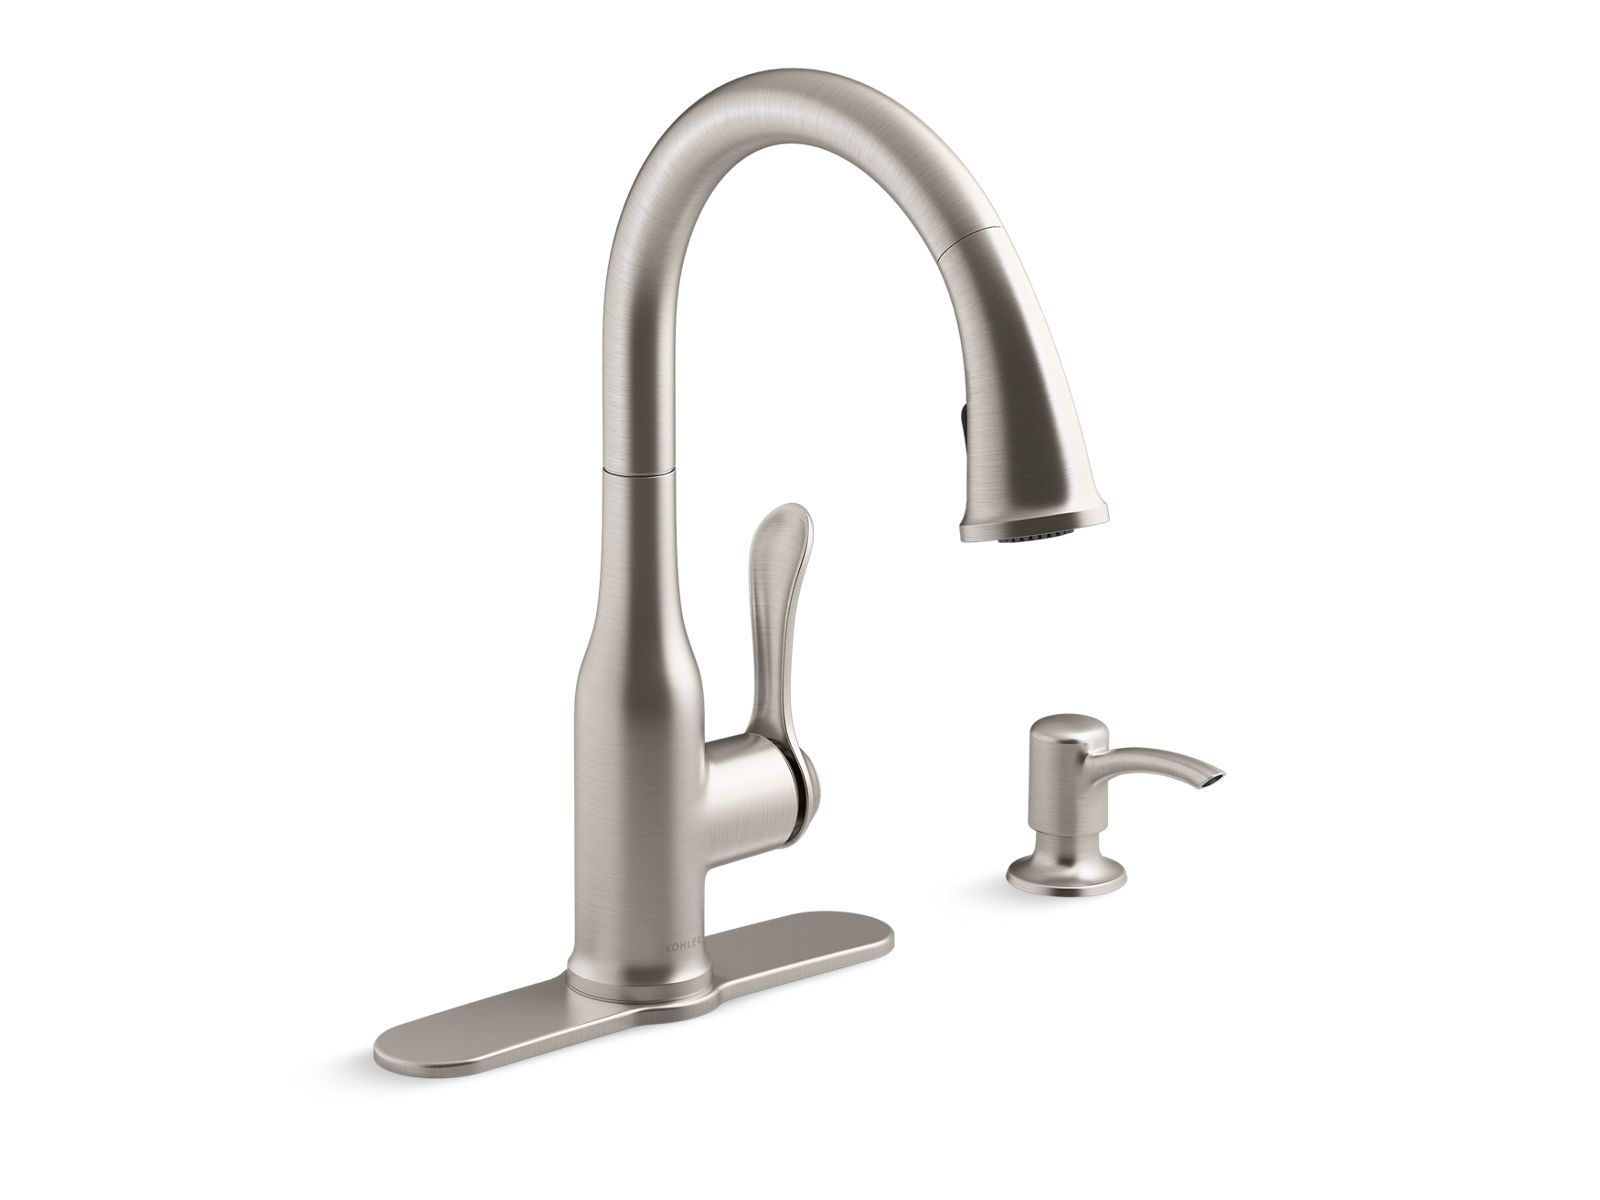 K R23863 Sd Motif Pull Down Kitchen Faucet With Soap Dispenser